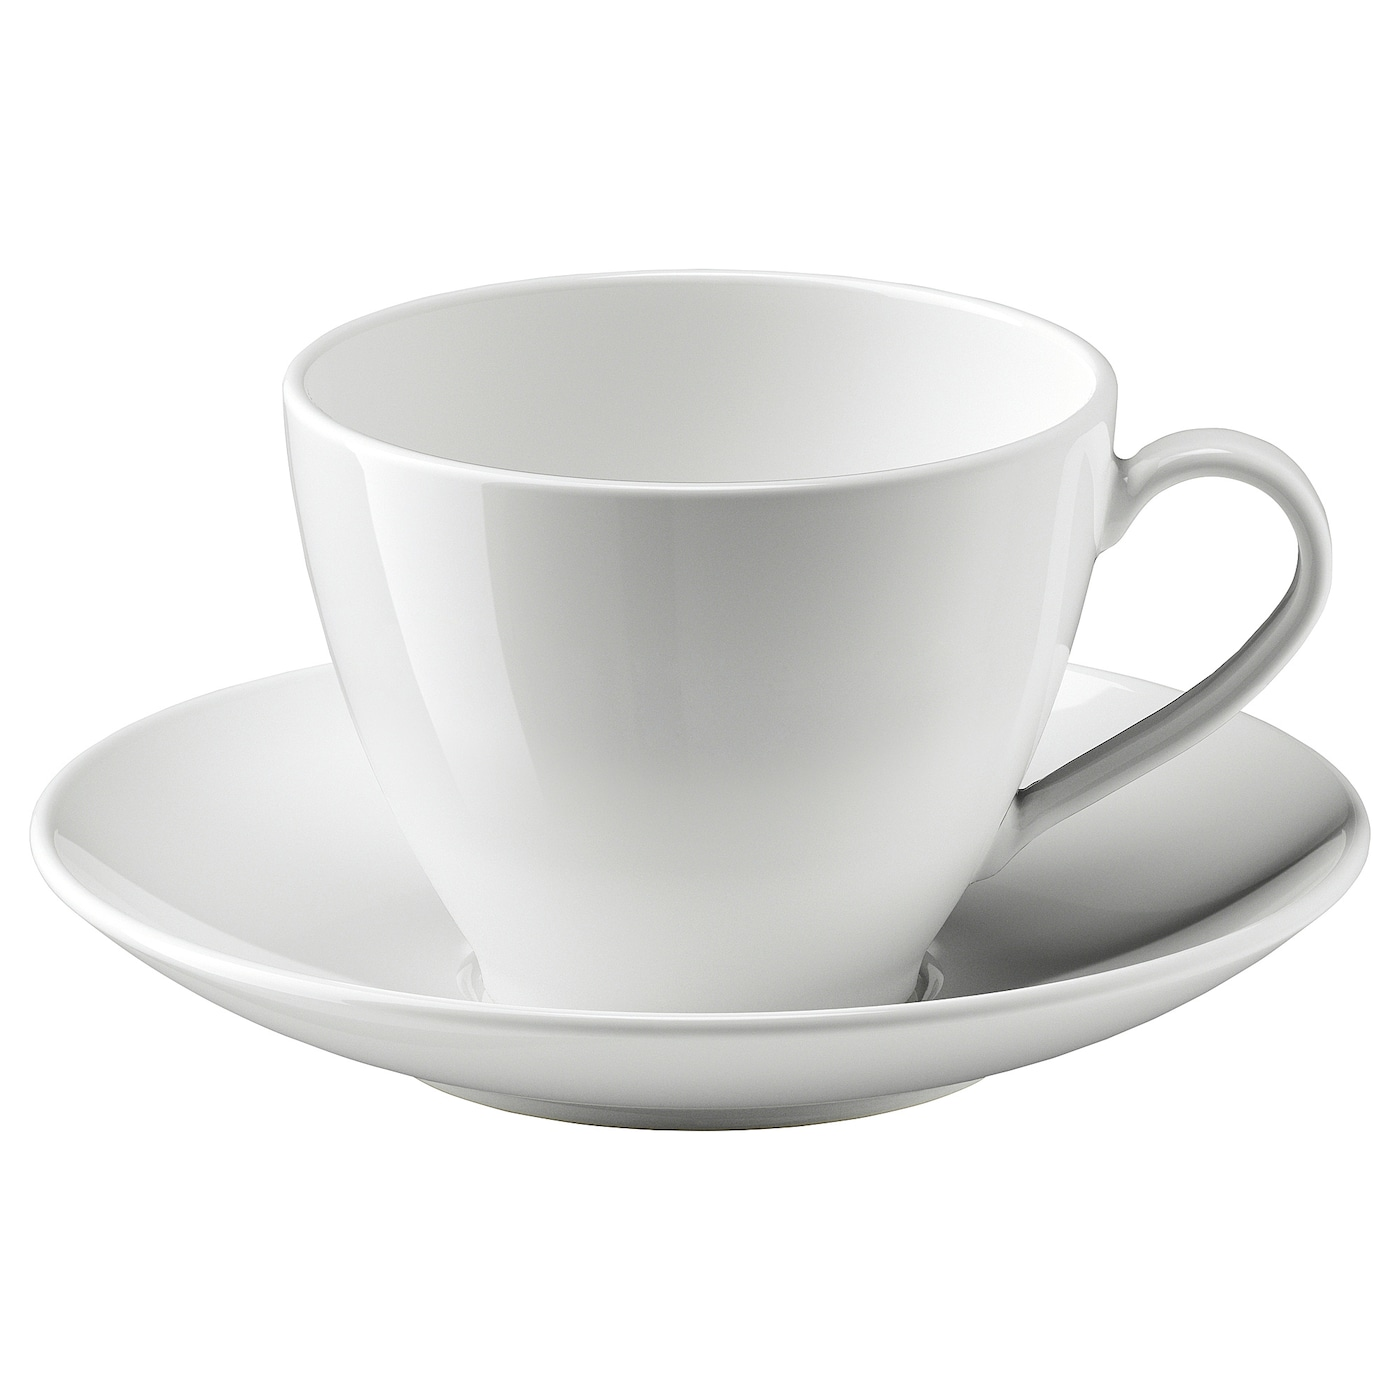 Vardera White Teacup With Saucer Ikea